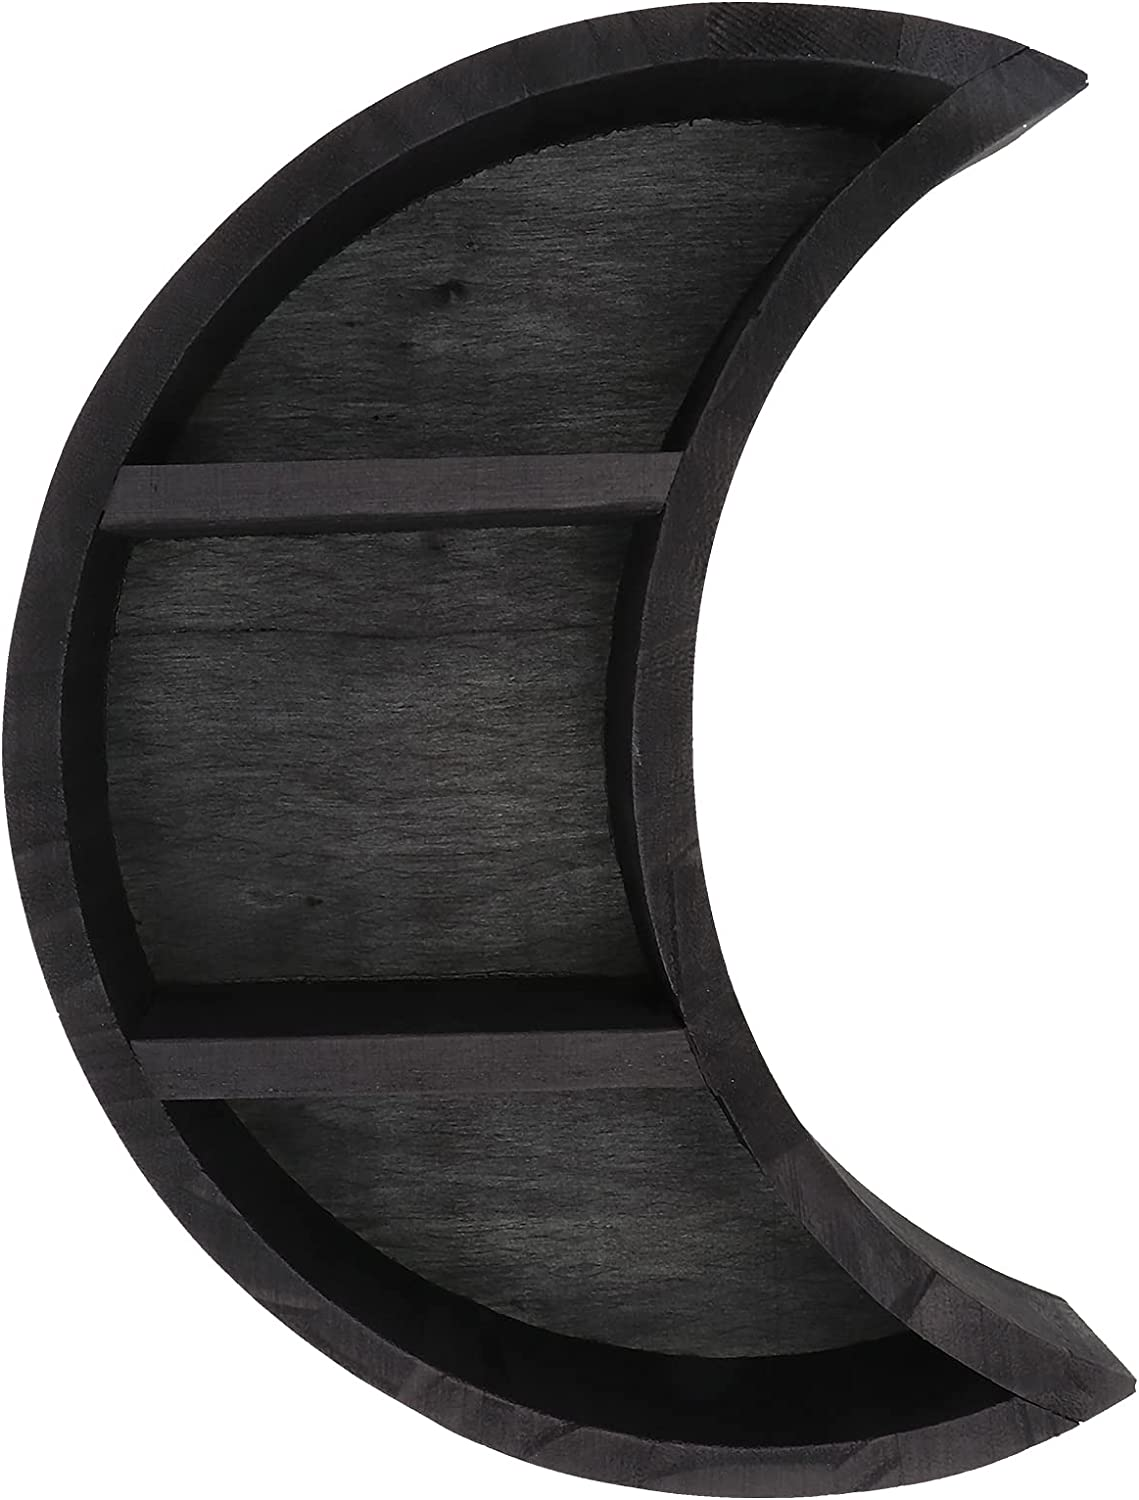 PRETYZOOM Decorative Storage Rack Wall Moon Stand Year-end annual account Shaped Sale